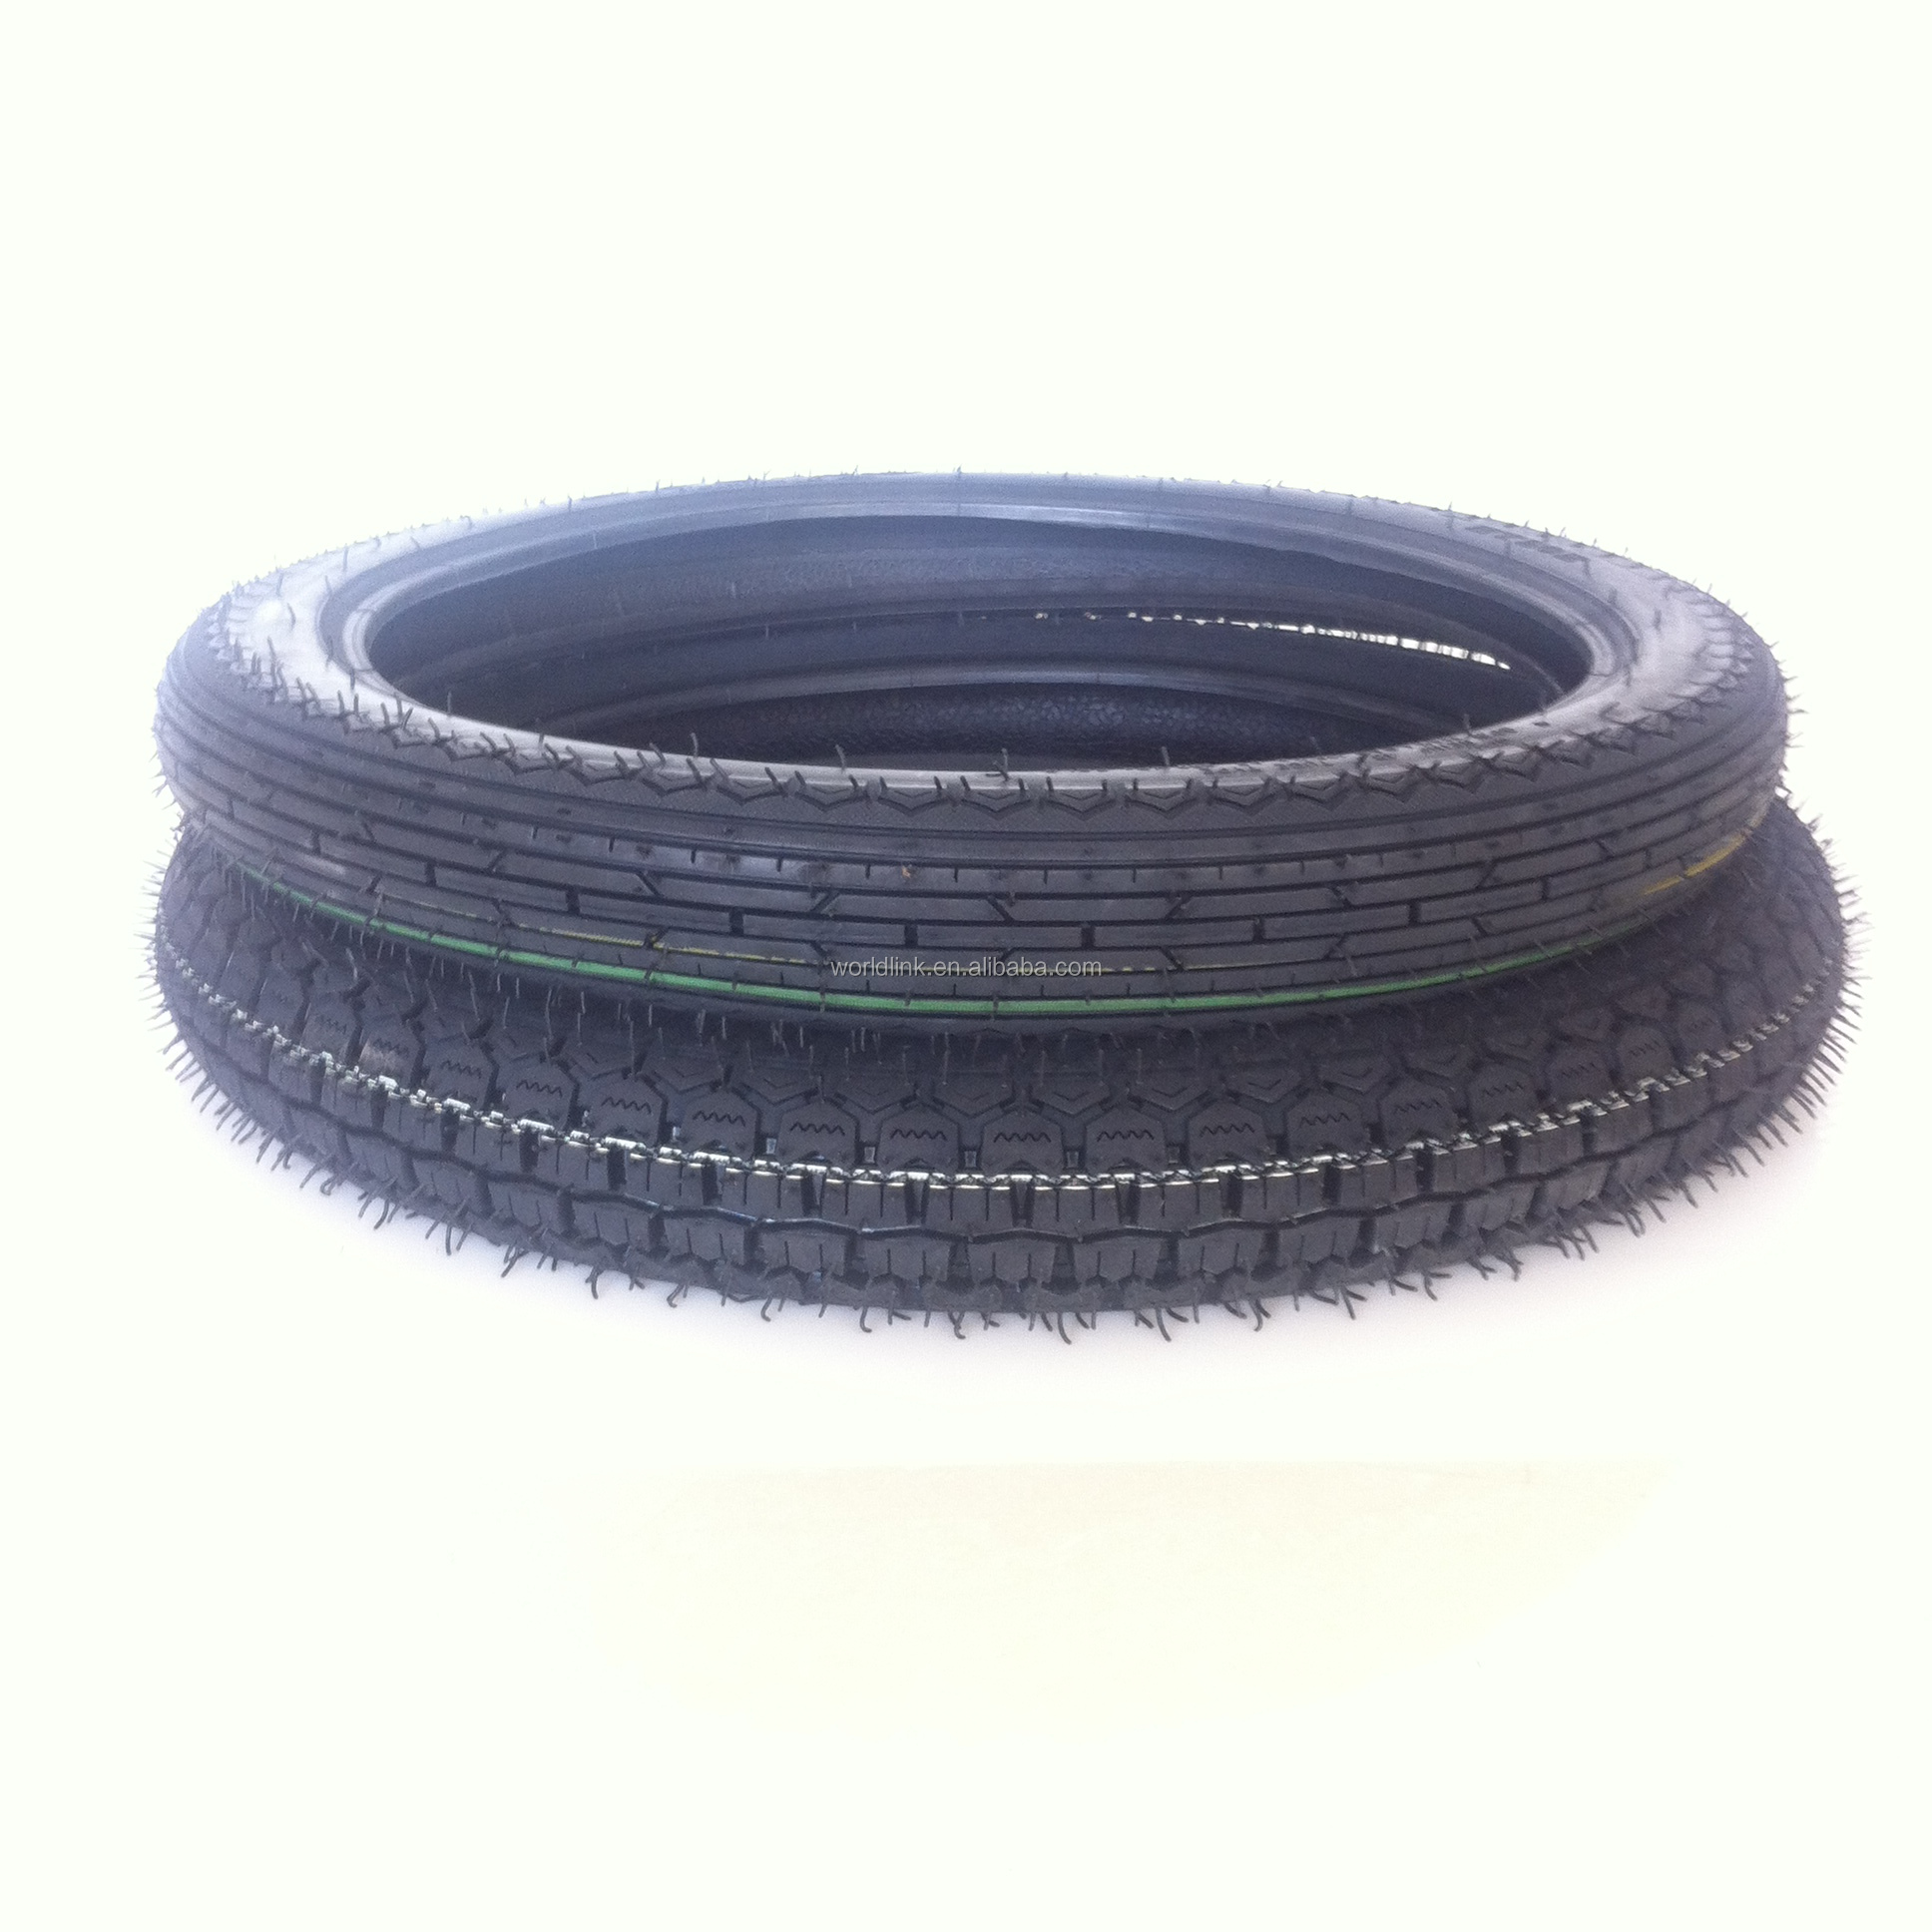 Low Price High Quality China Tyre For Motorcycle